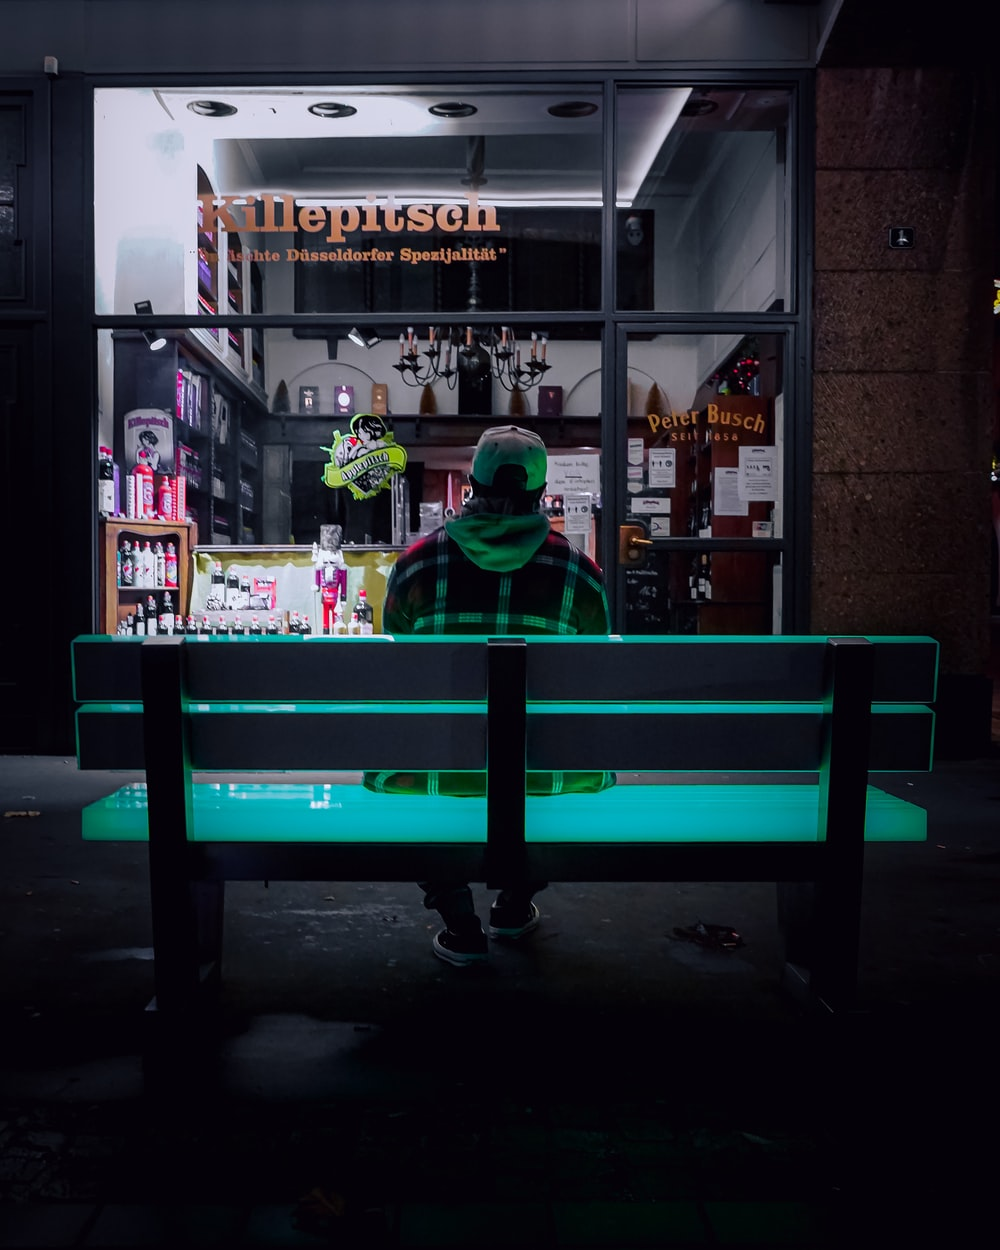 man in green jacket sitting on red bench